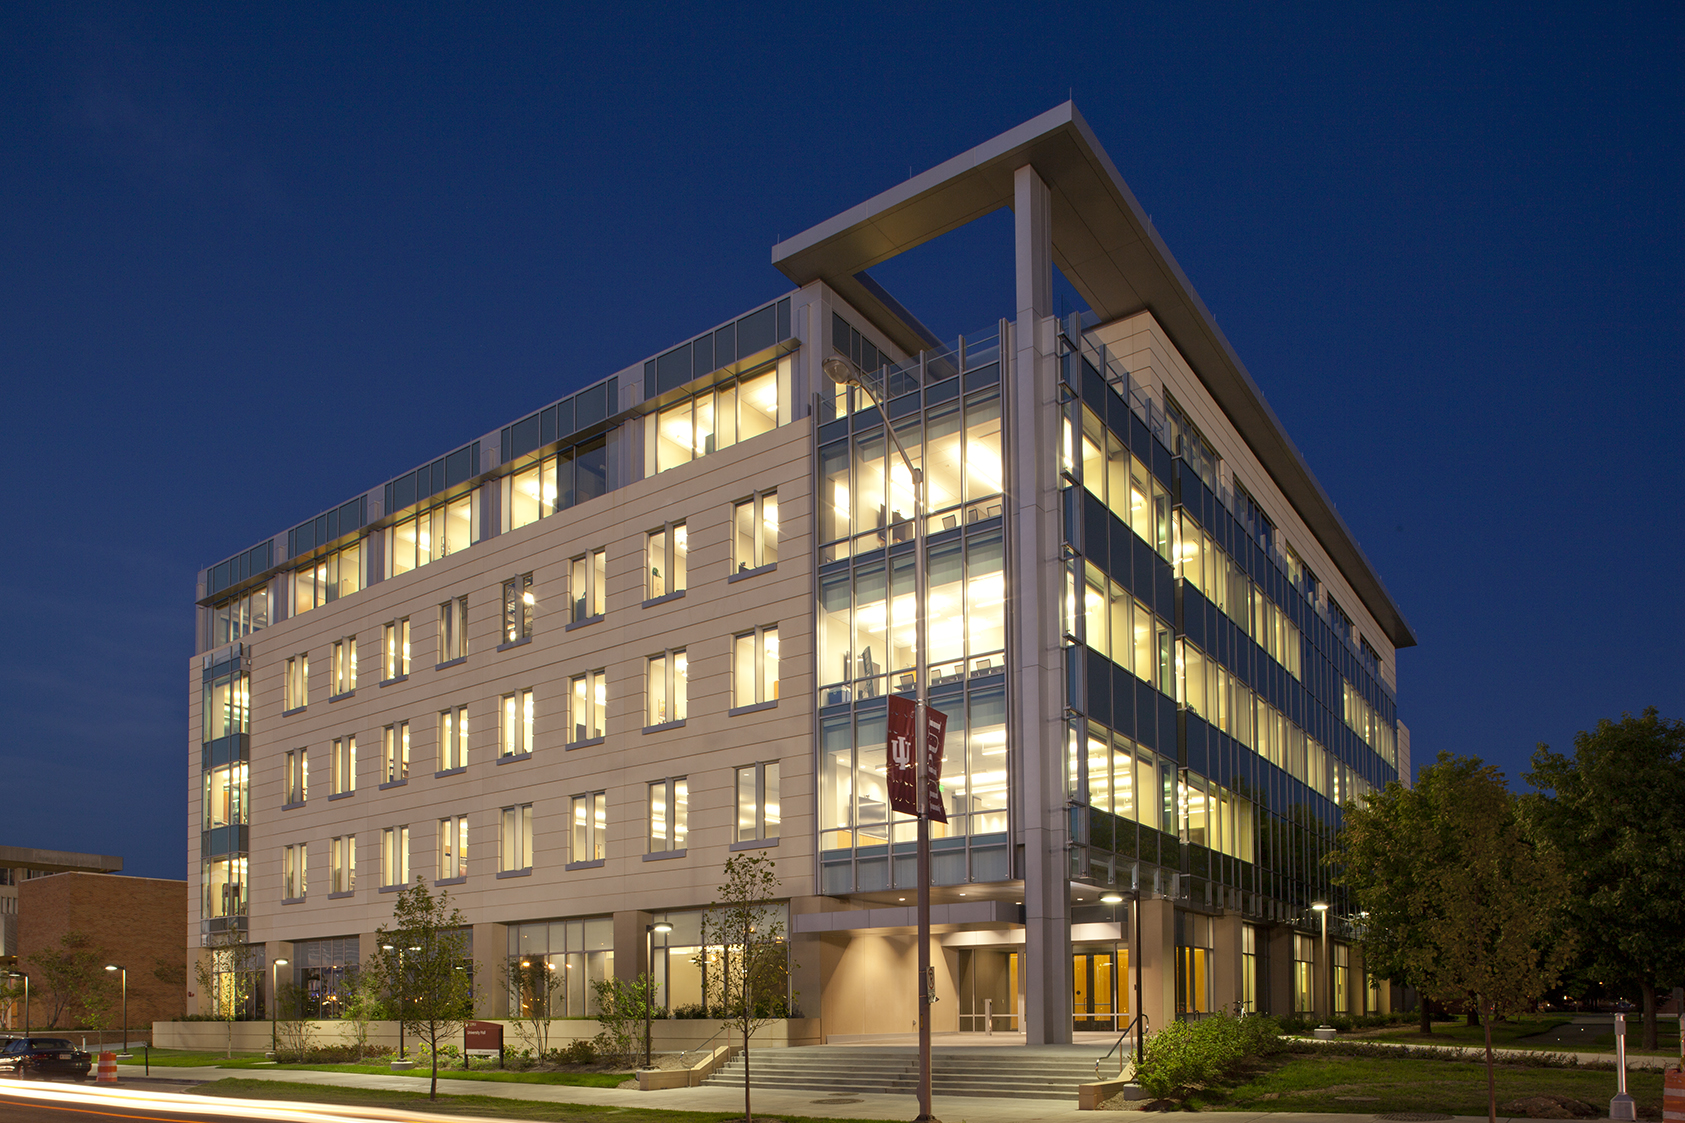 INSIDEIUPUI   University Hall ready for launch   June 2, 2015